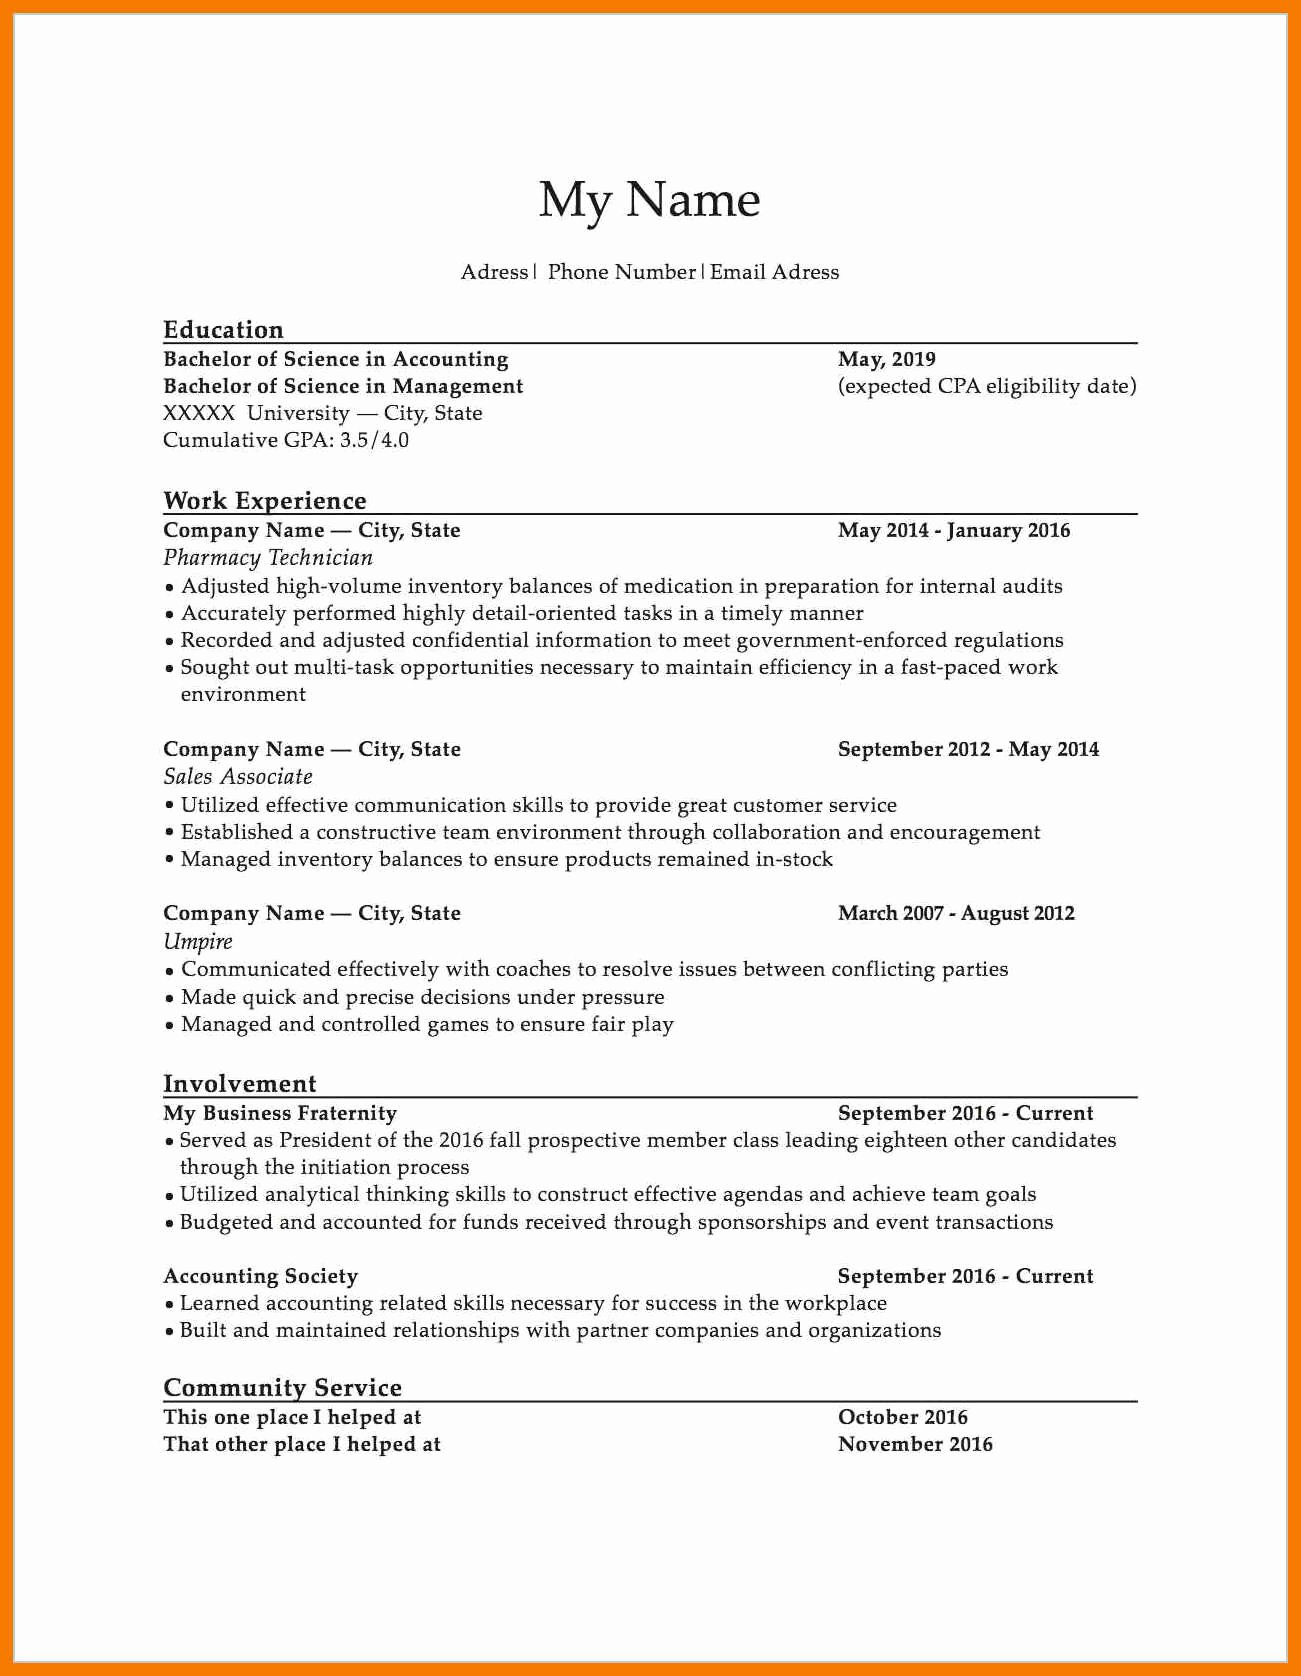 Cover Letter format Reddit Inspirational 10 11 is A Cover Letter Necessary Reddit